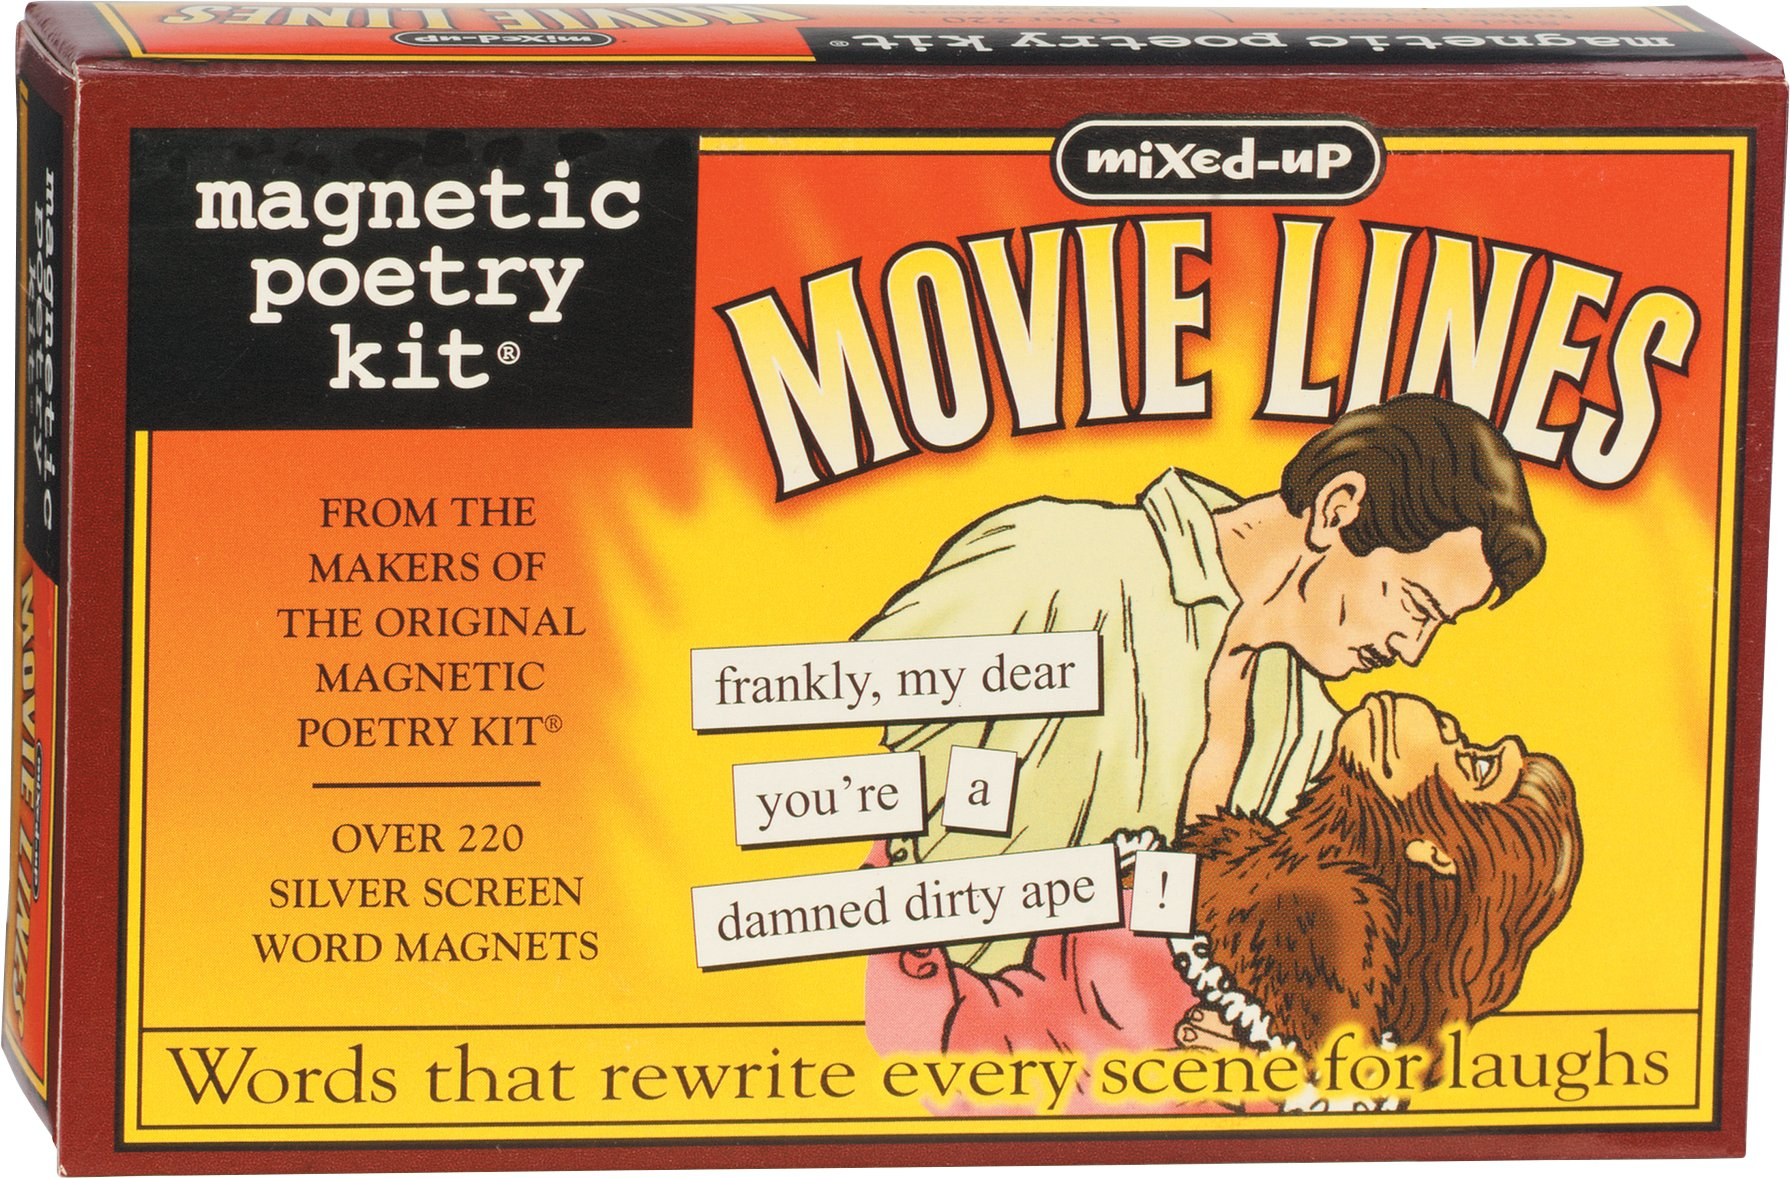 Magnetic Poetry - Mixed-Up Movie Lines Kit - Words for Refrigerator - Write Poems and Letters on the Fridge - Made in the USA